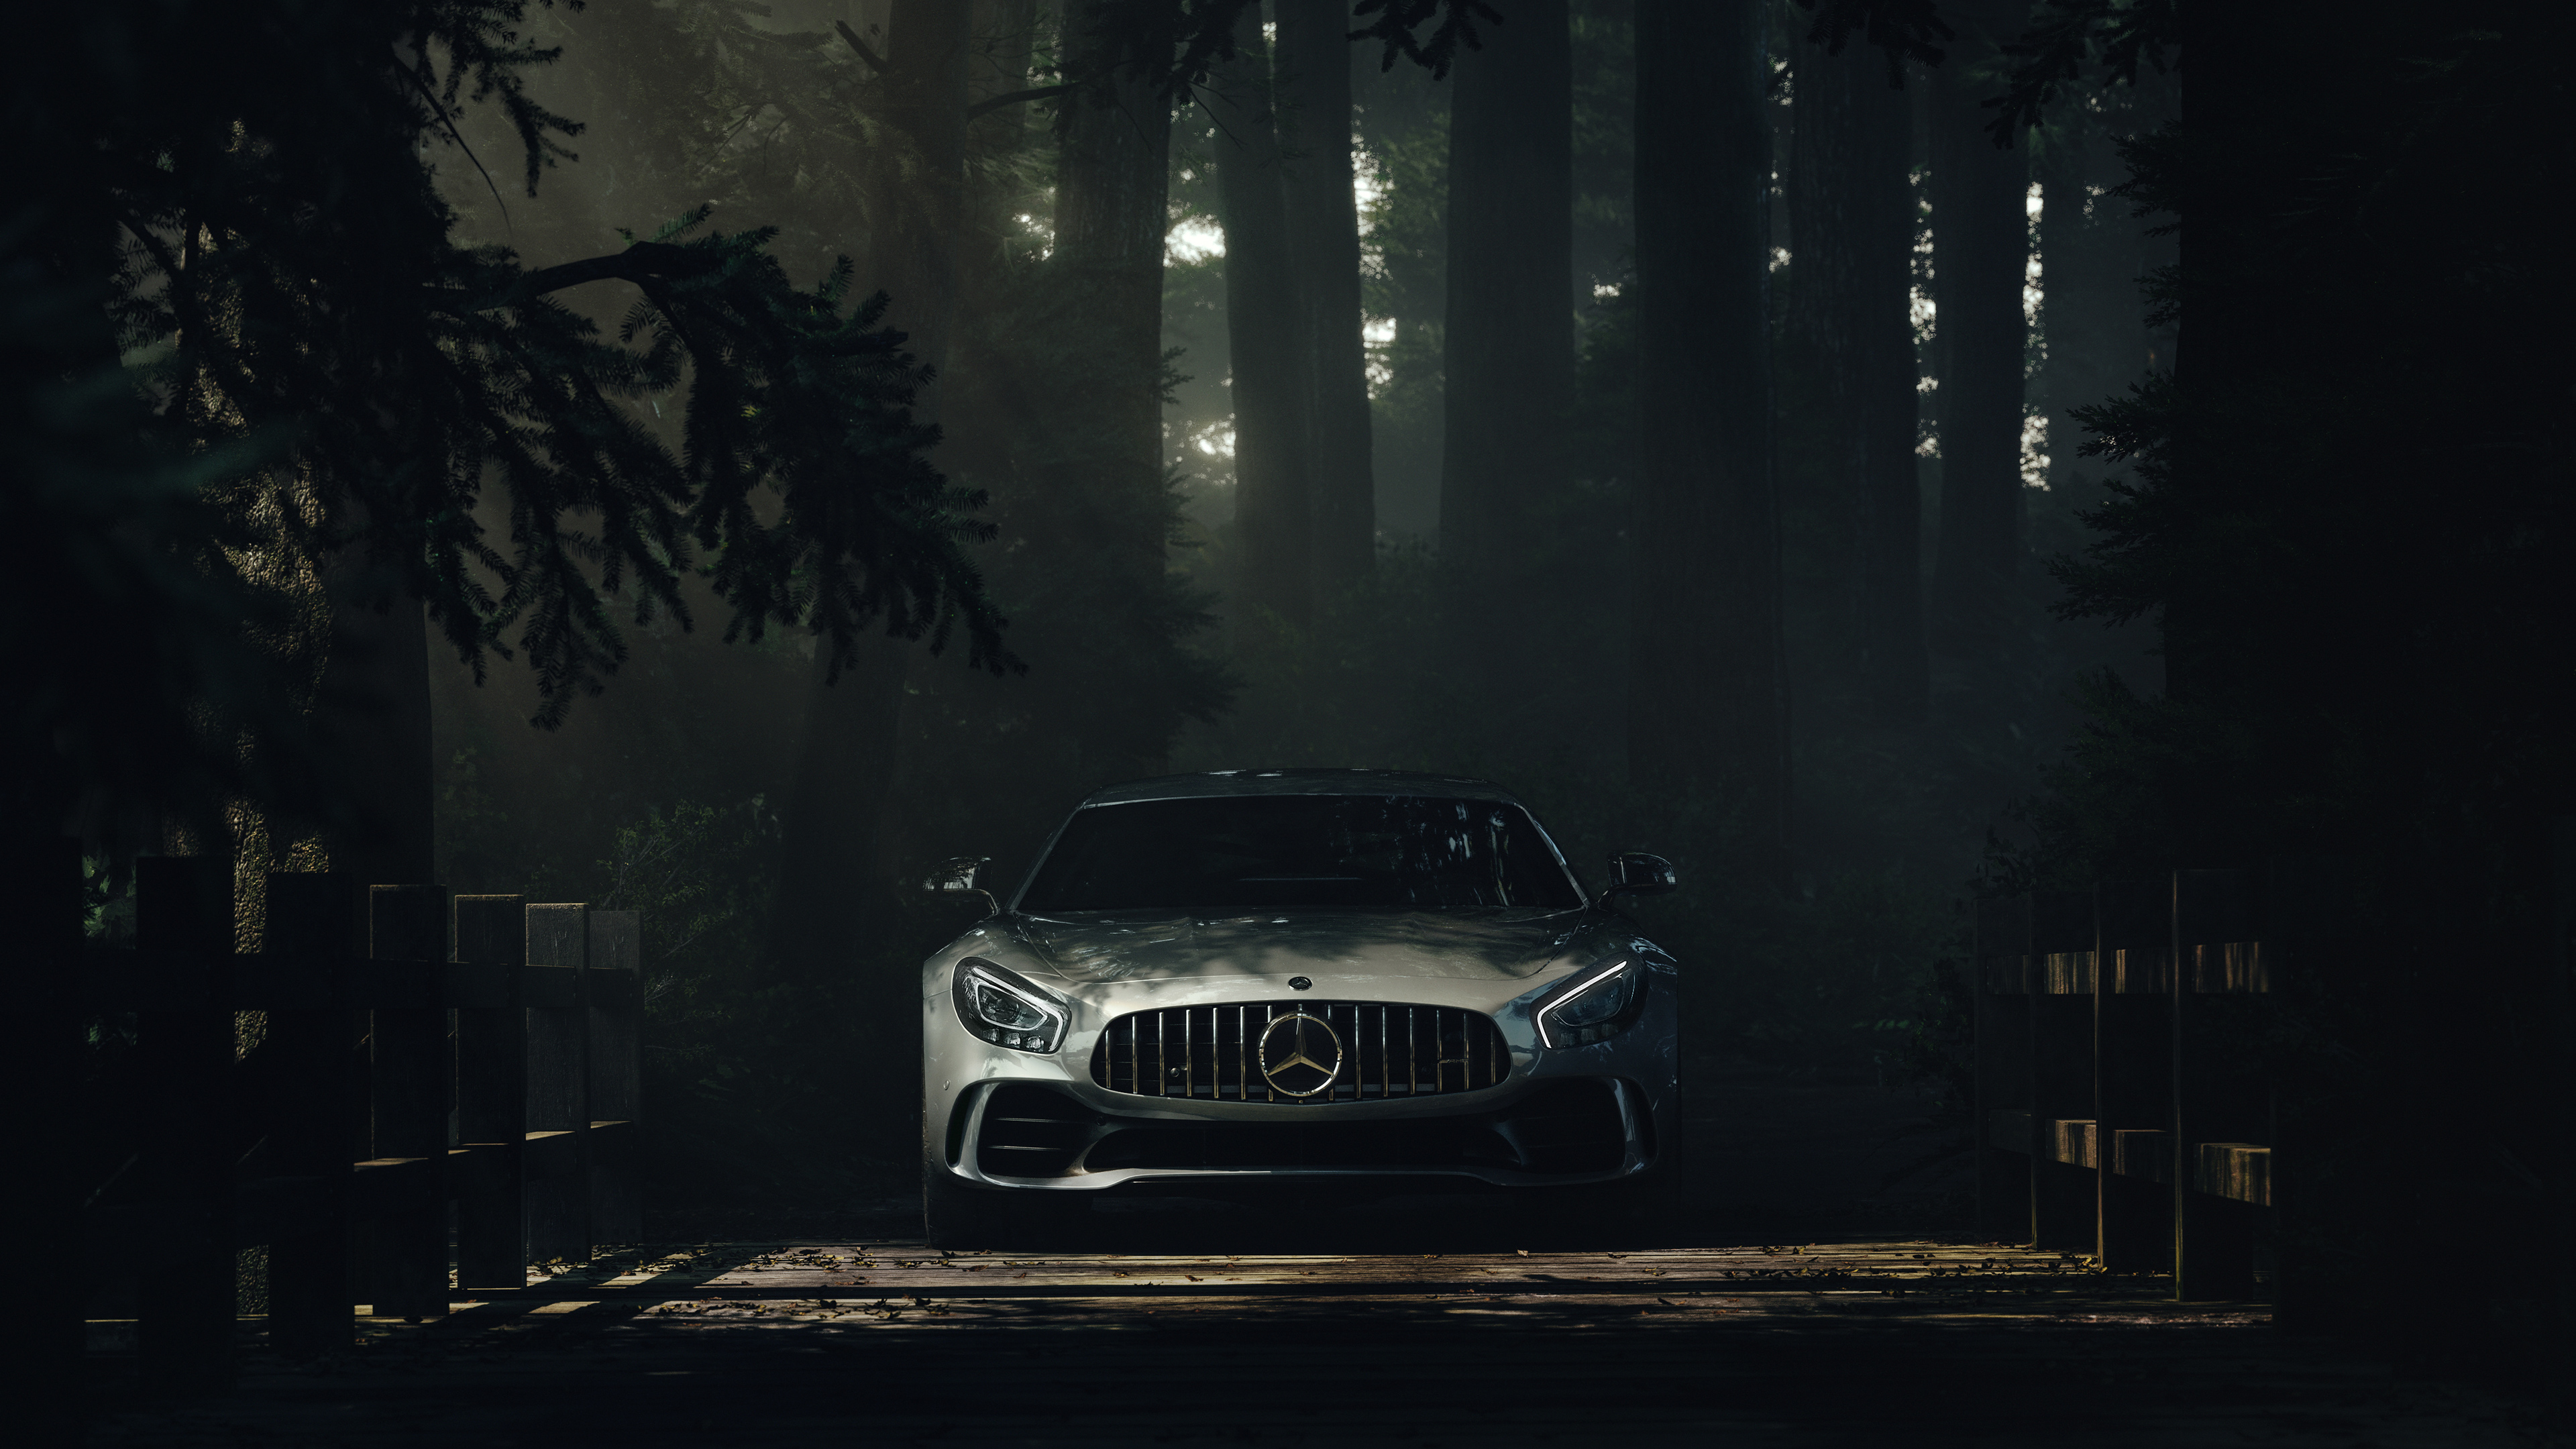 mercedes benz amg gt forest 4k 1547936810 - Mercedes Benz Amg GT Forest 4k - mercedes wallpapers, mercedes amg gtr wallpapers, hd-wallpapers, cars wallpapers, behance wallpapers, 4k-wallpapers, 2018 cars wallpapers